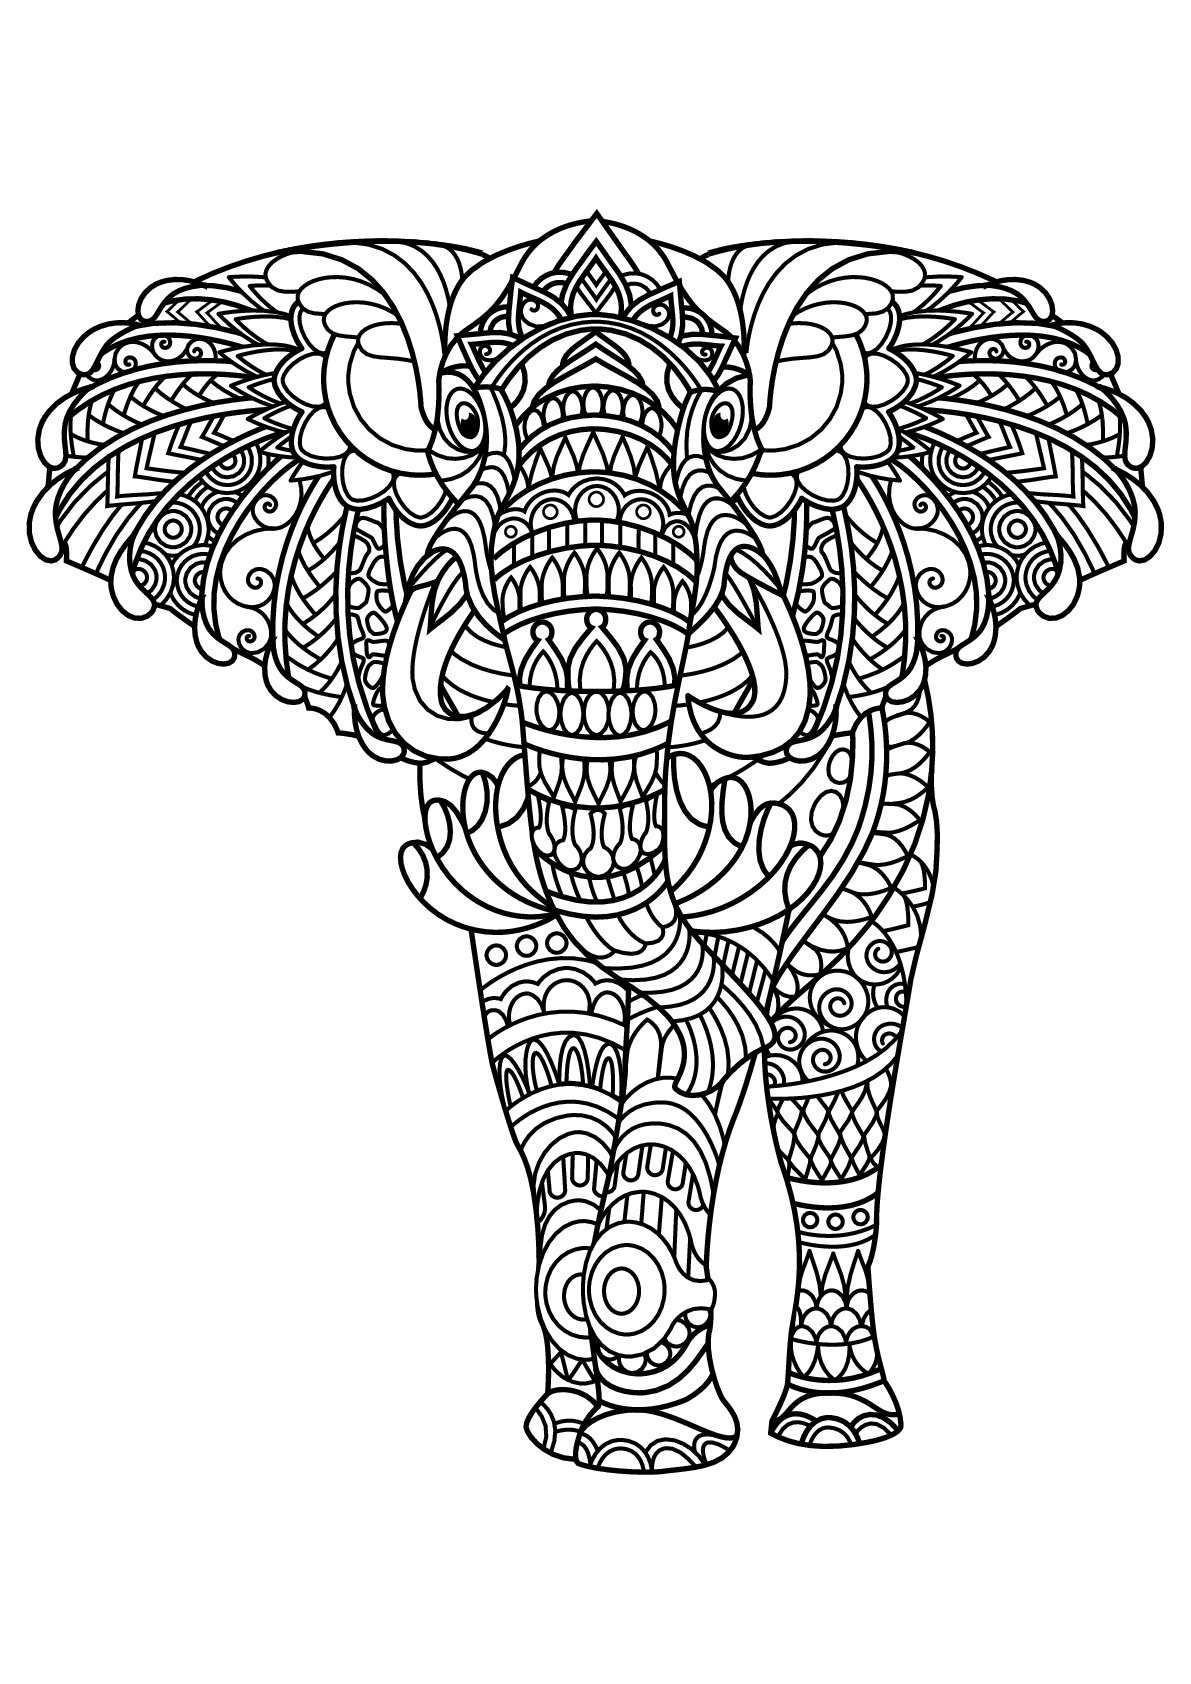 Elephants to color for children - Elephants - Free printable ...